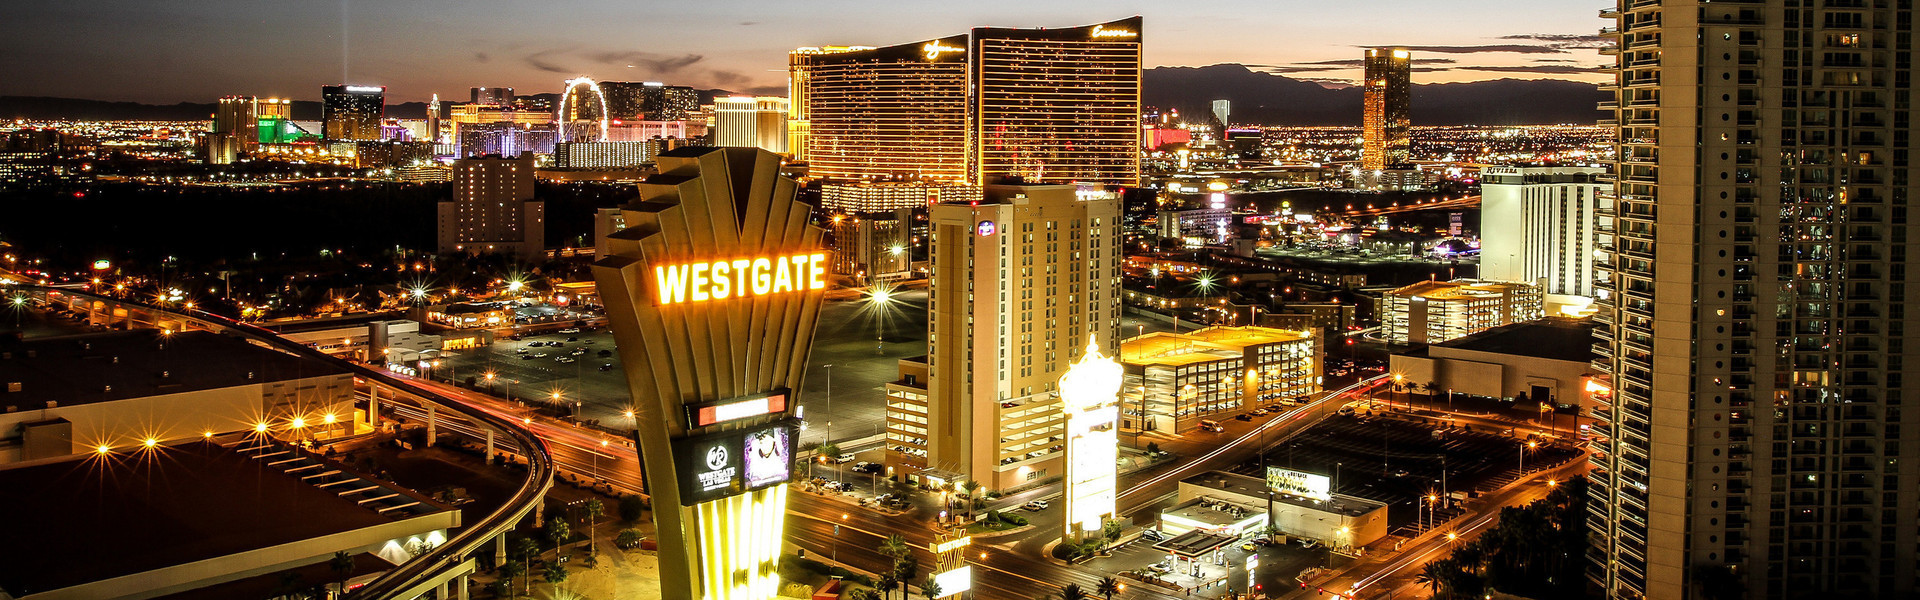 Las Vegas Hotel and Casino with the Best Las Vegas Hotel Deals | Las Vegas Skyline at Night